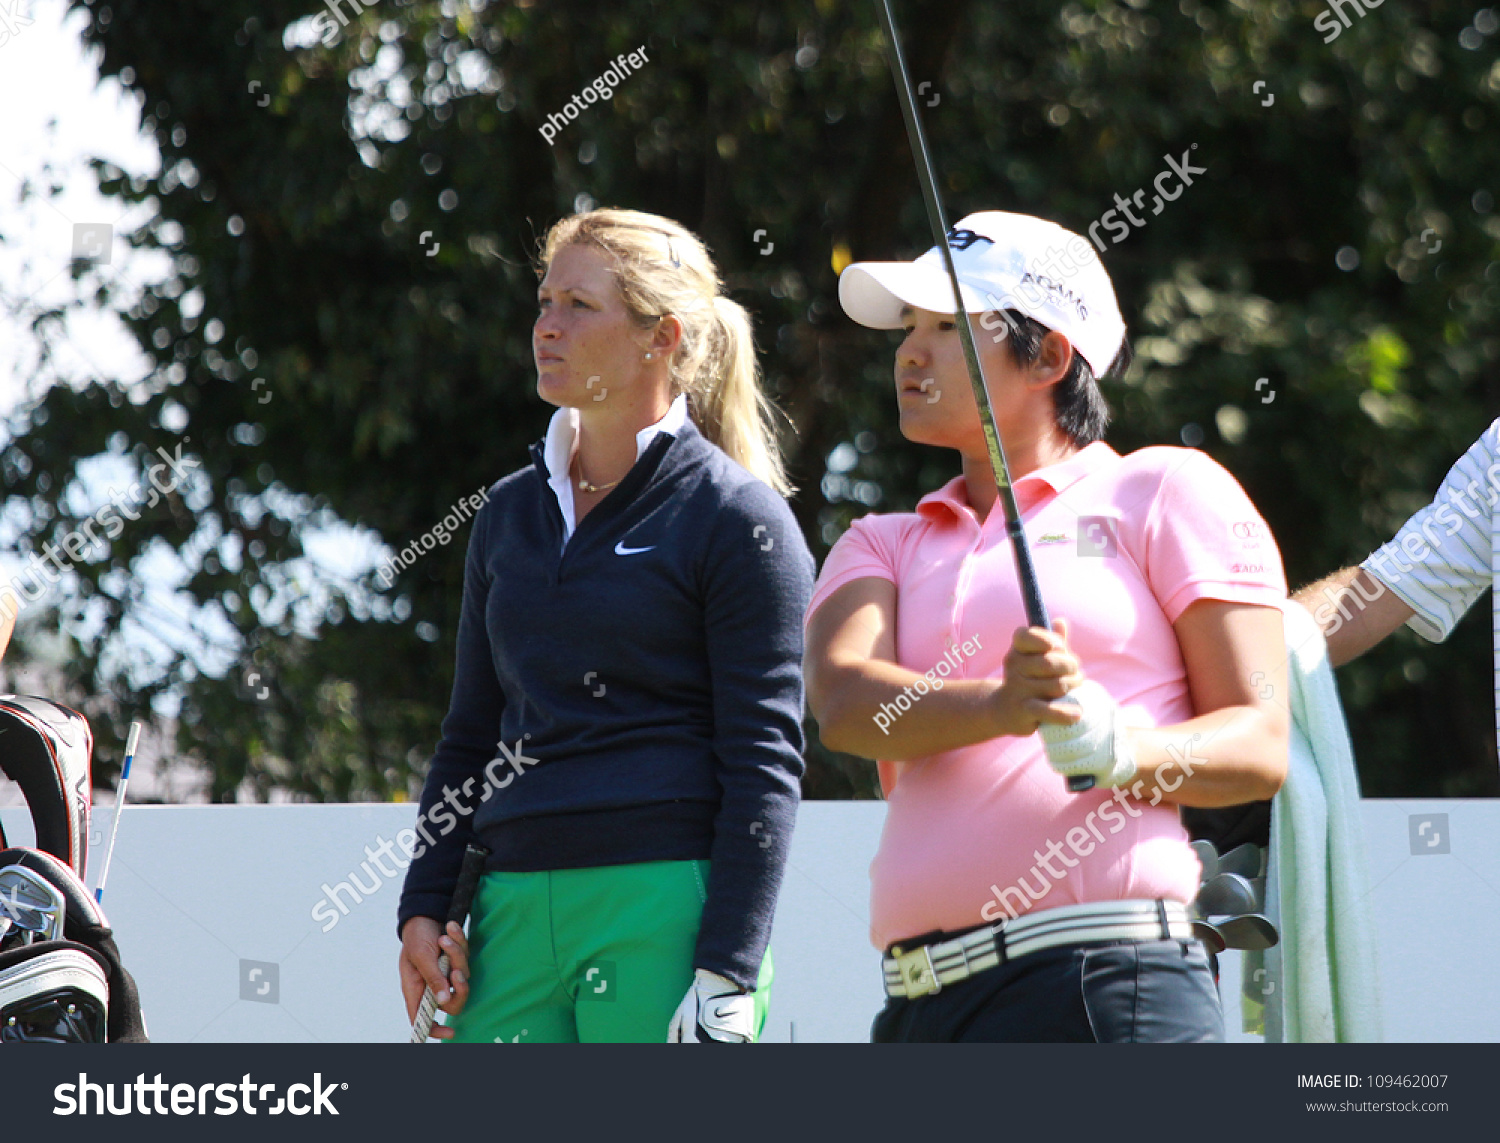 competition evian The much-maligned evian championship in france will move to a july date from september starting in 2019 and become the world's second richest women's tournament, the.